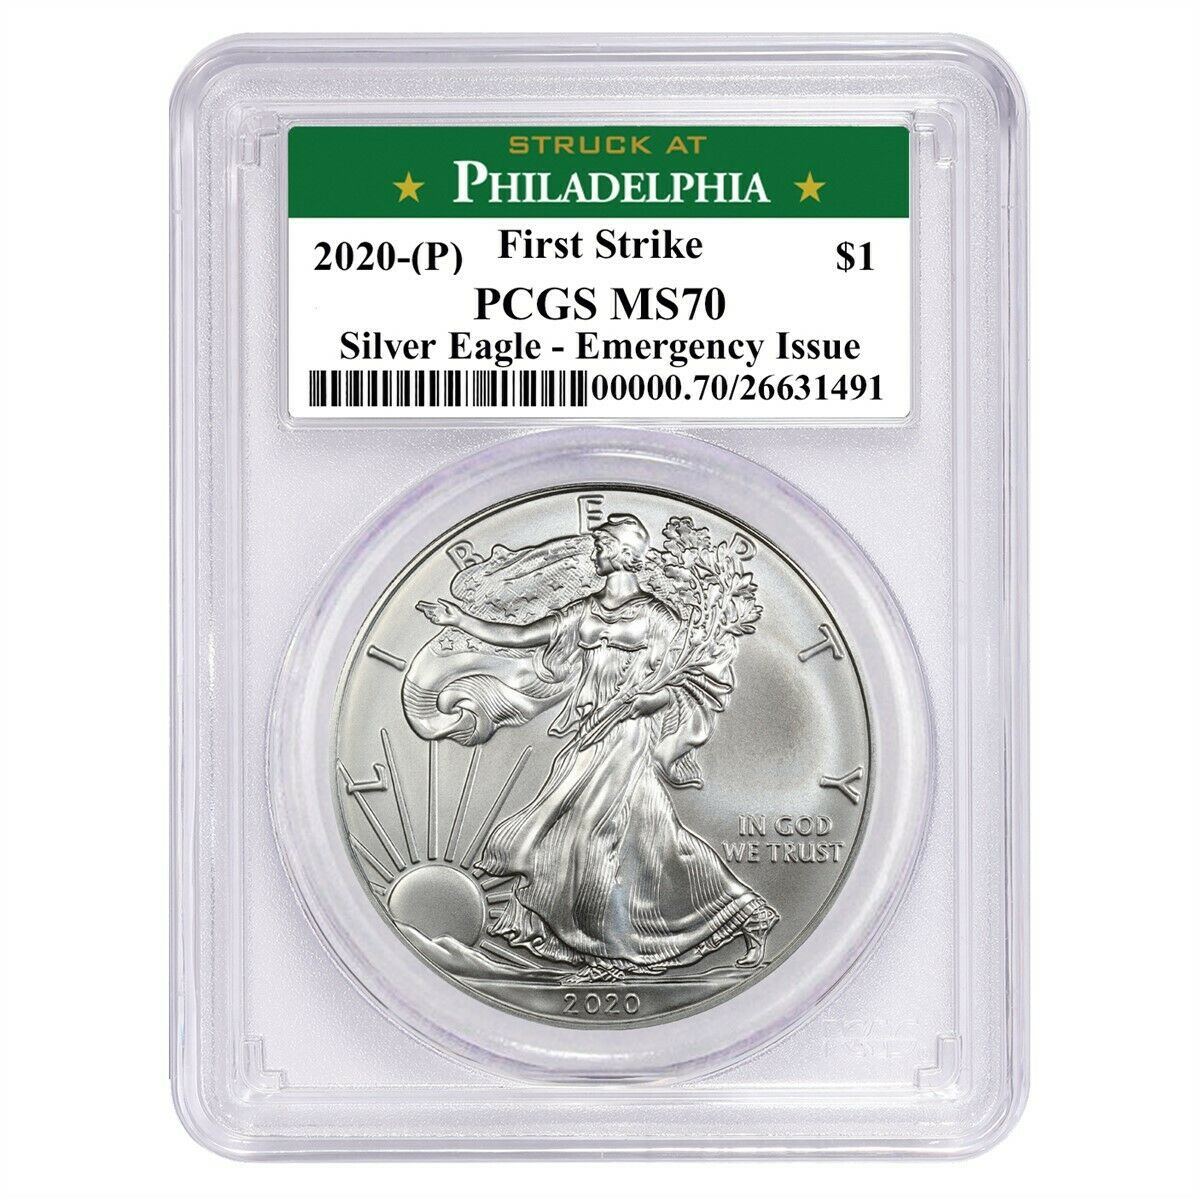 2020 (P) Struck At Philadelphia Silver Eagle PCGS MS70 FS